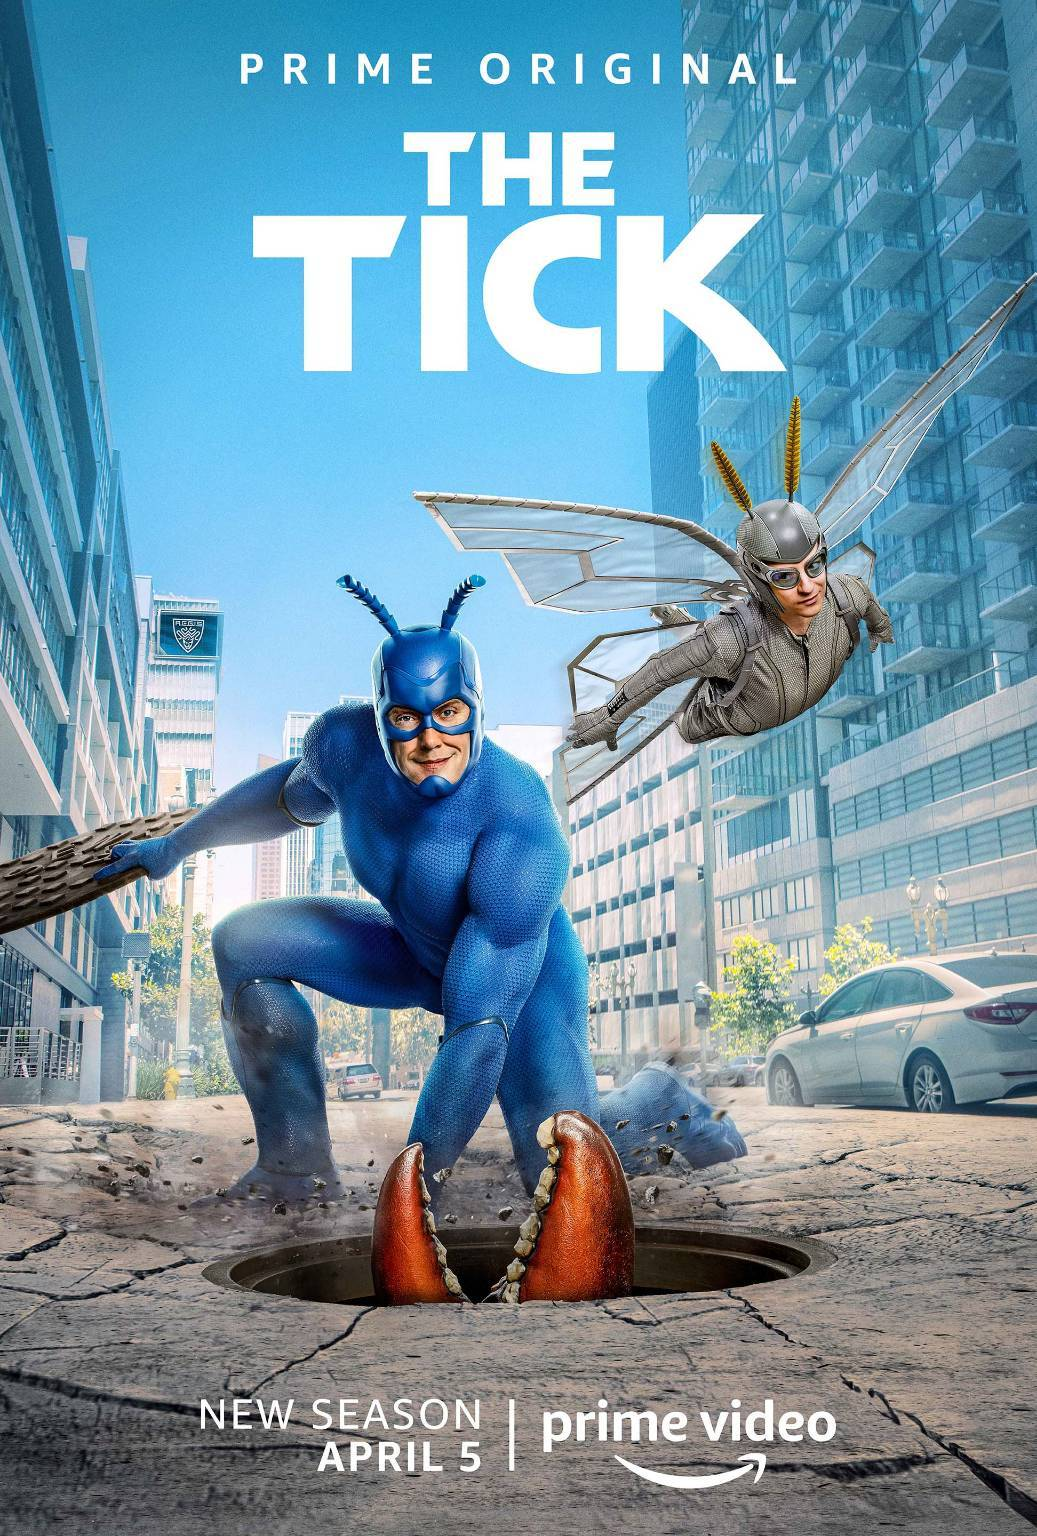 The_Tick_AmazonPrime